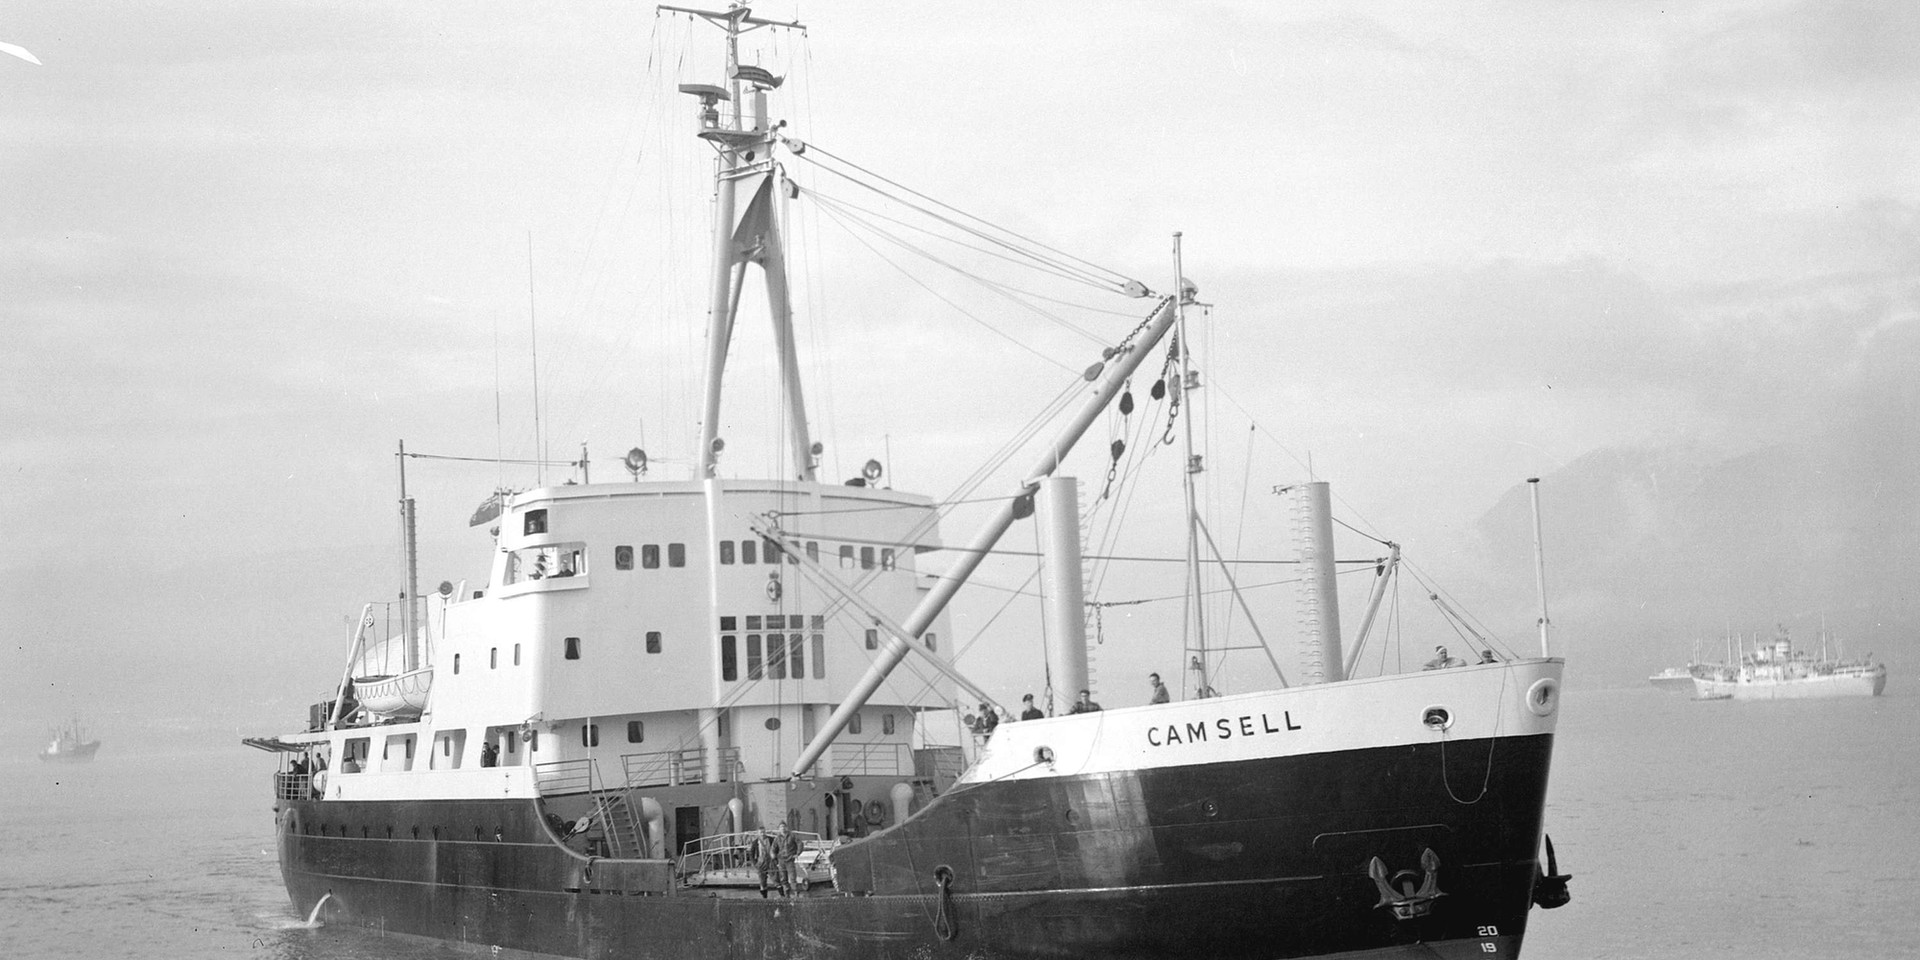 M.S. CAMSELL